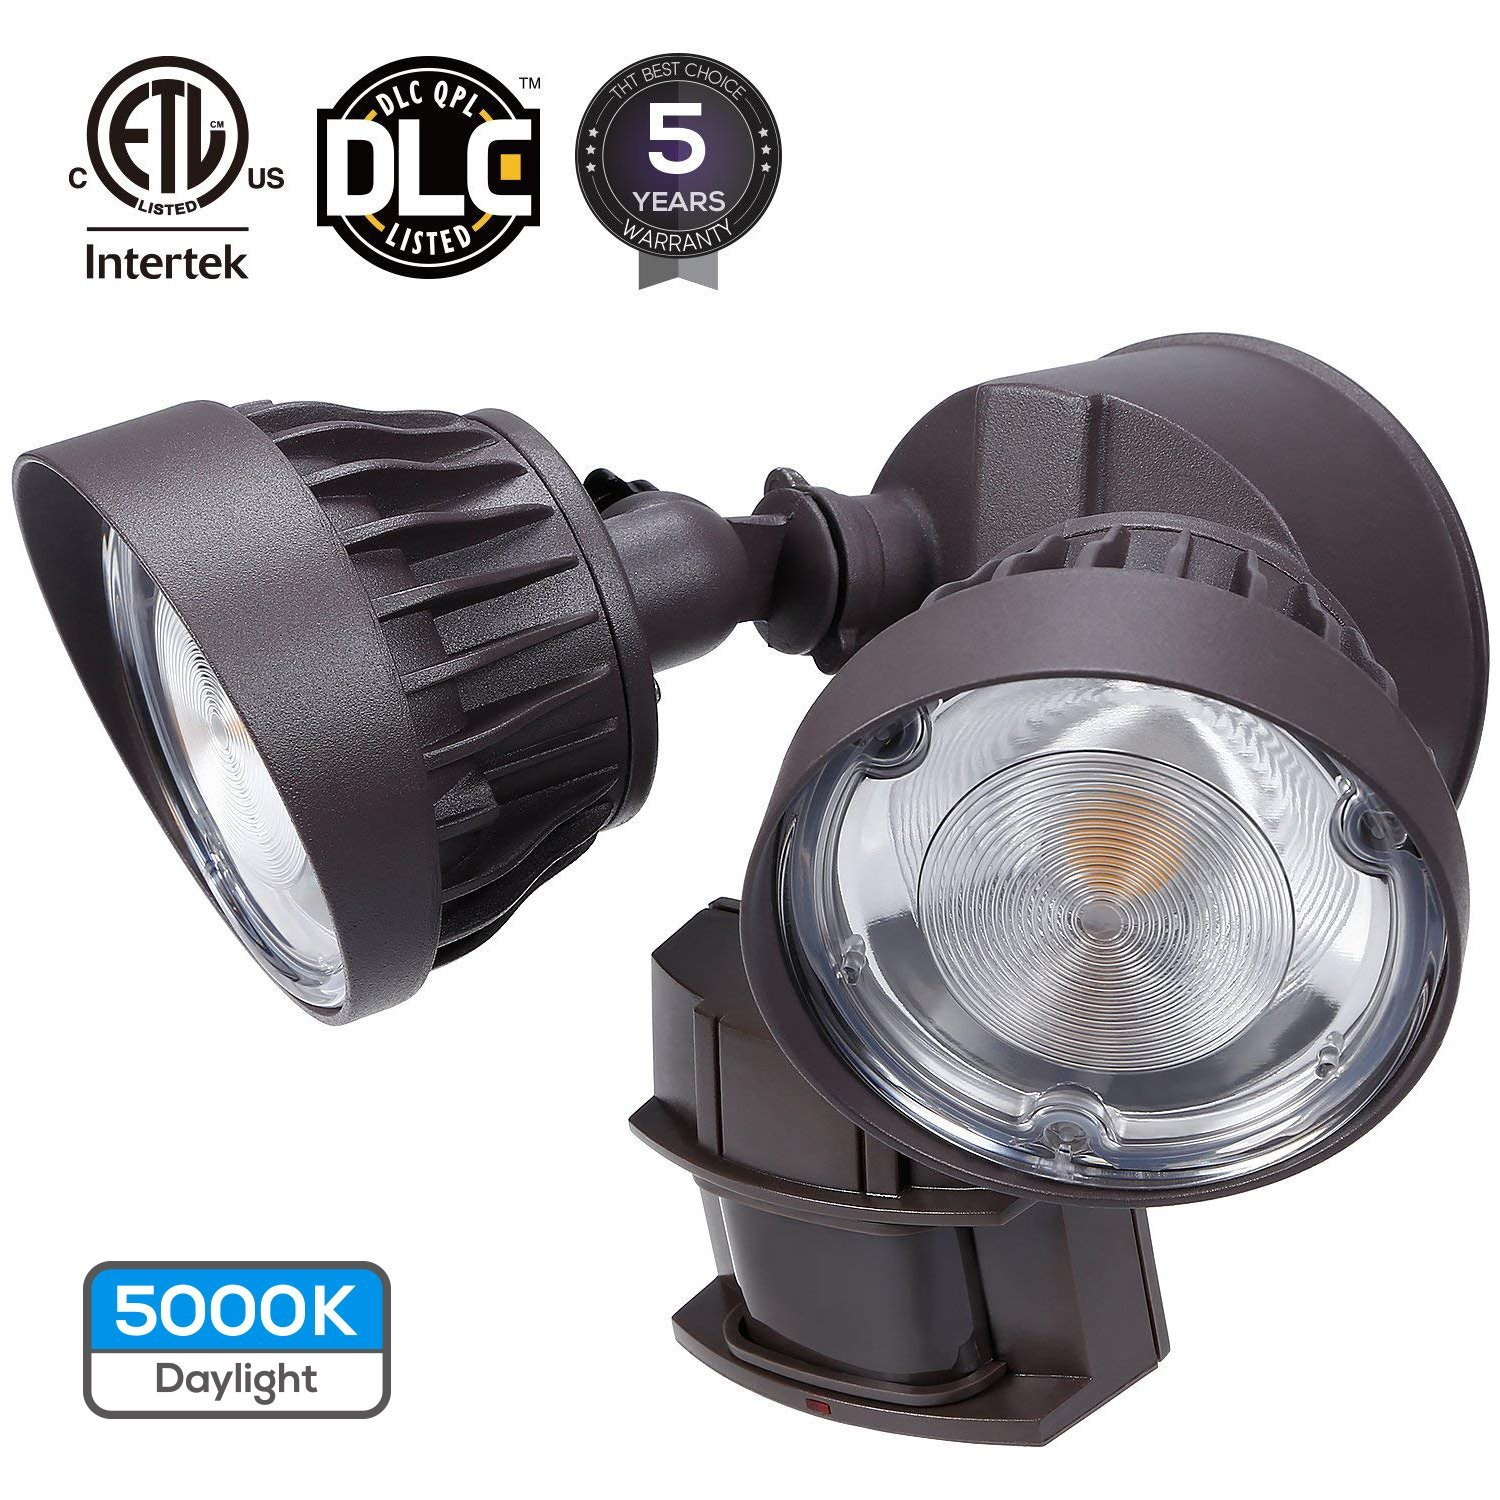 LEONLITE Dual-Head Motion Activated LED Security Light, 3300lm Ultra Bright, 30W (200W Equiv.), ETL & DLC Certified, IP65 Waterproof, 5000K Daylight, 5 Years Warranty -Brown